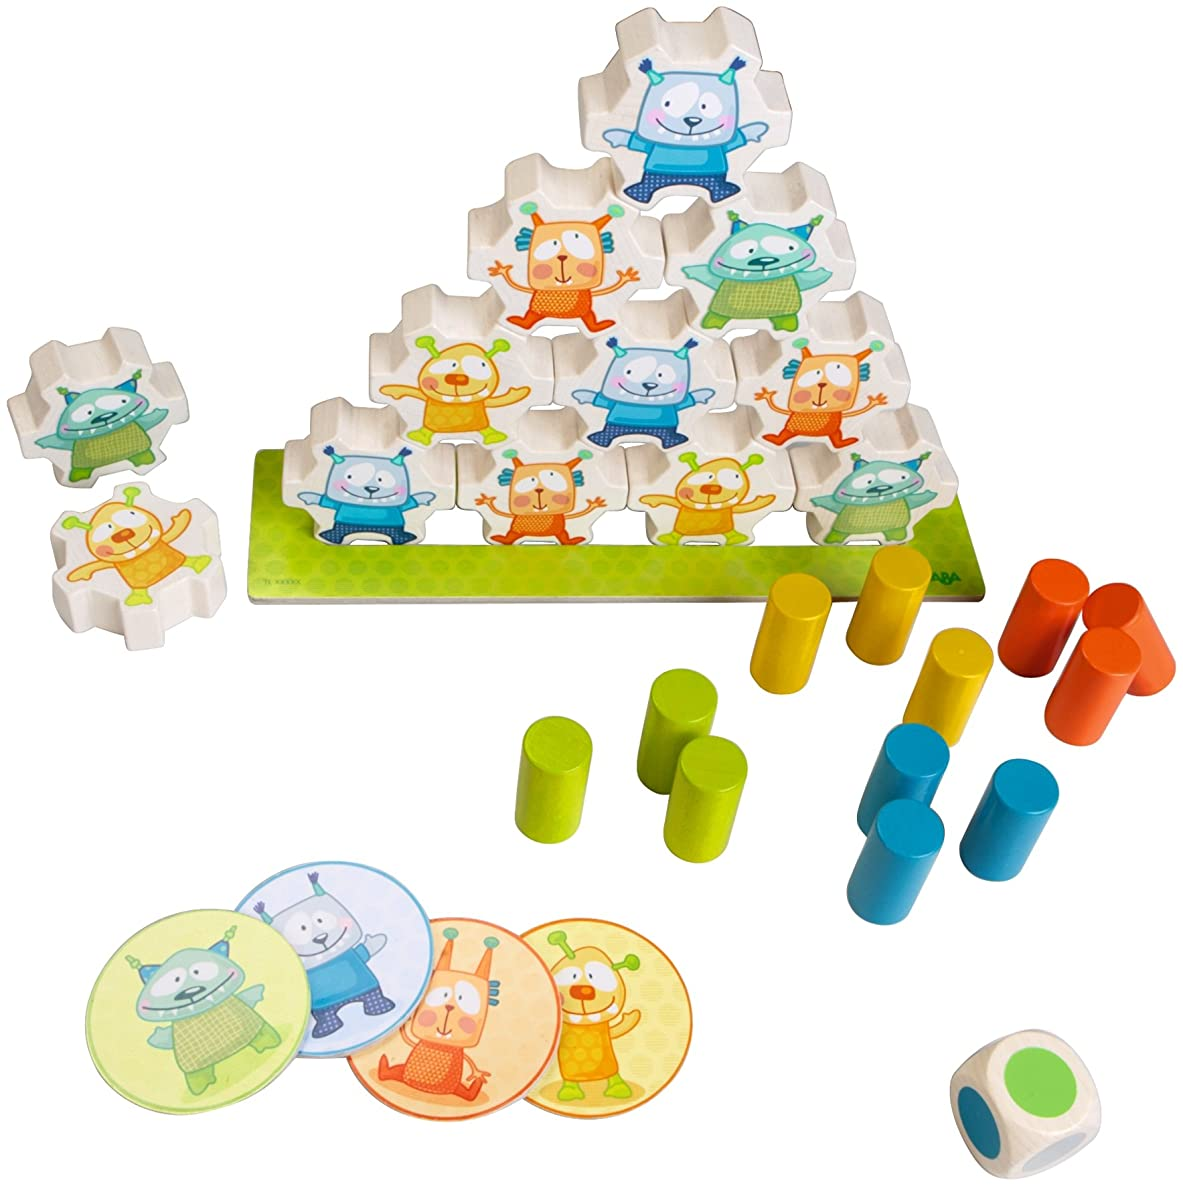 HABA Mini Monsters Wooden Stacking Game for Ages 2 and Up (Made in Germany)